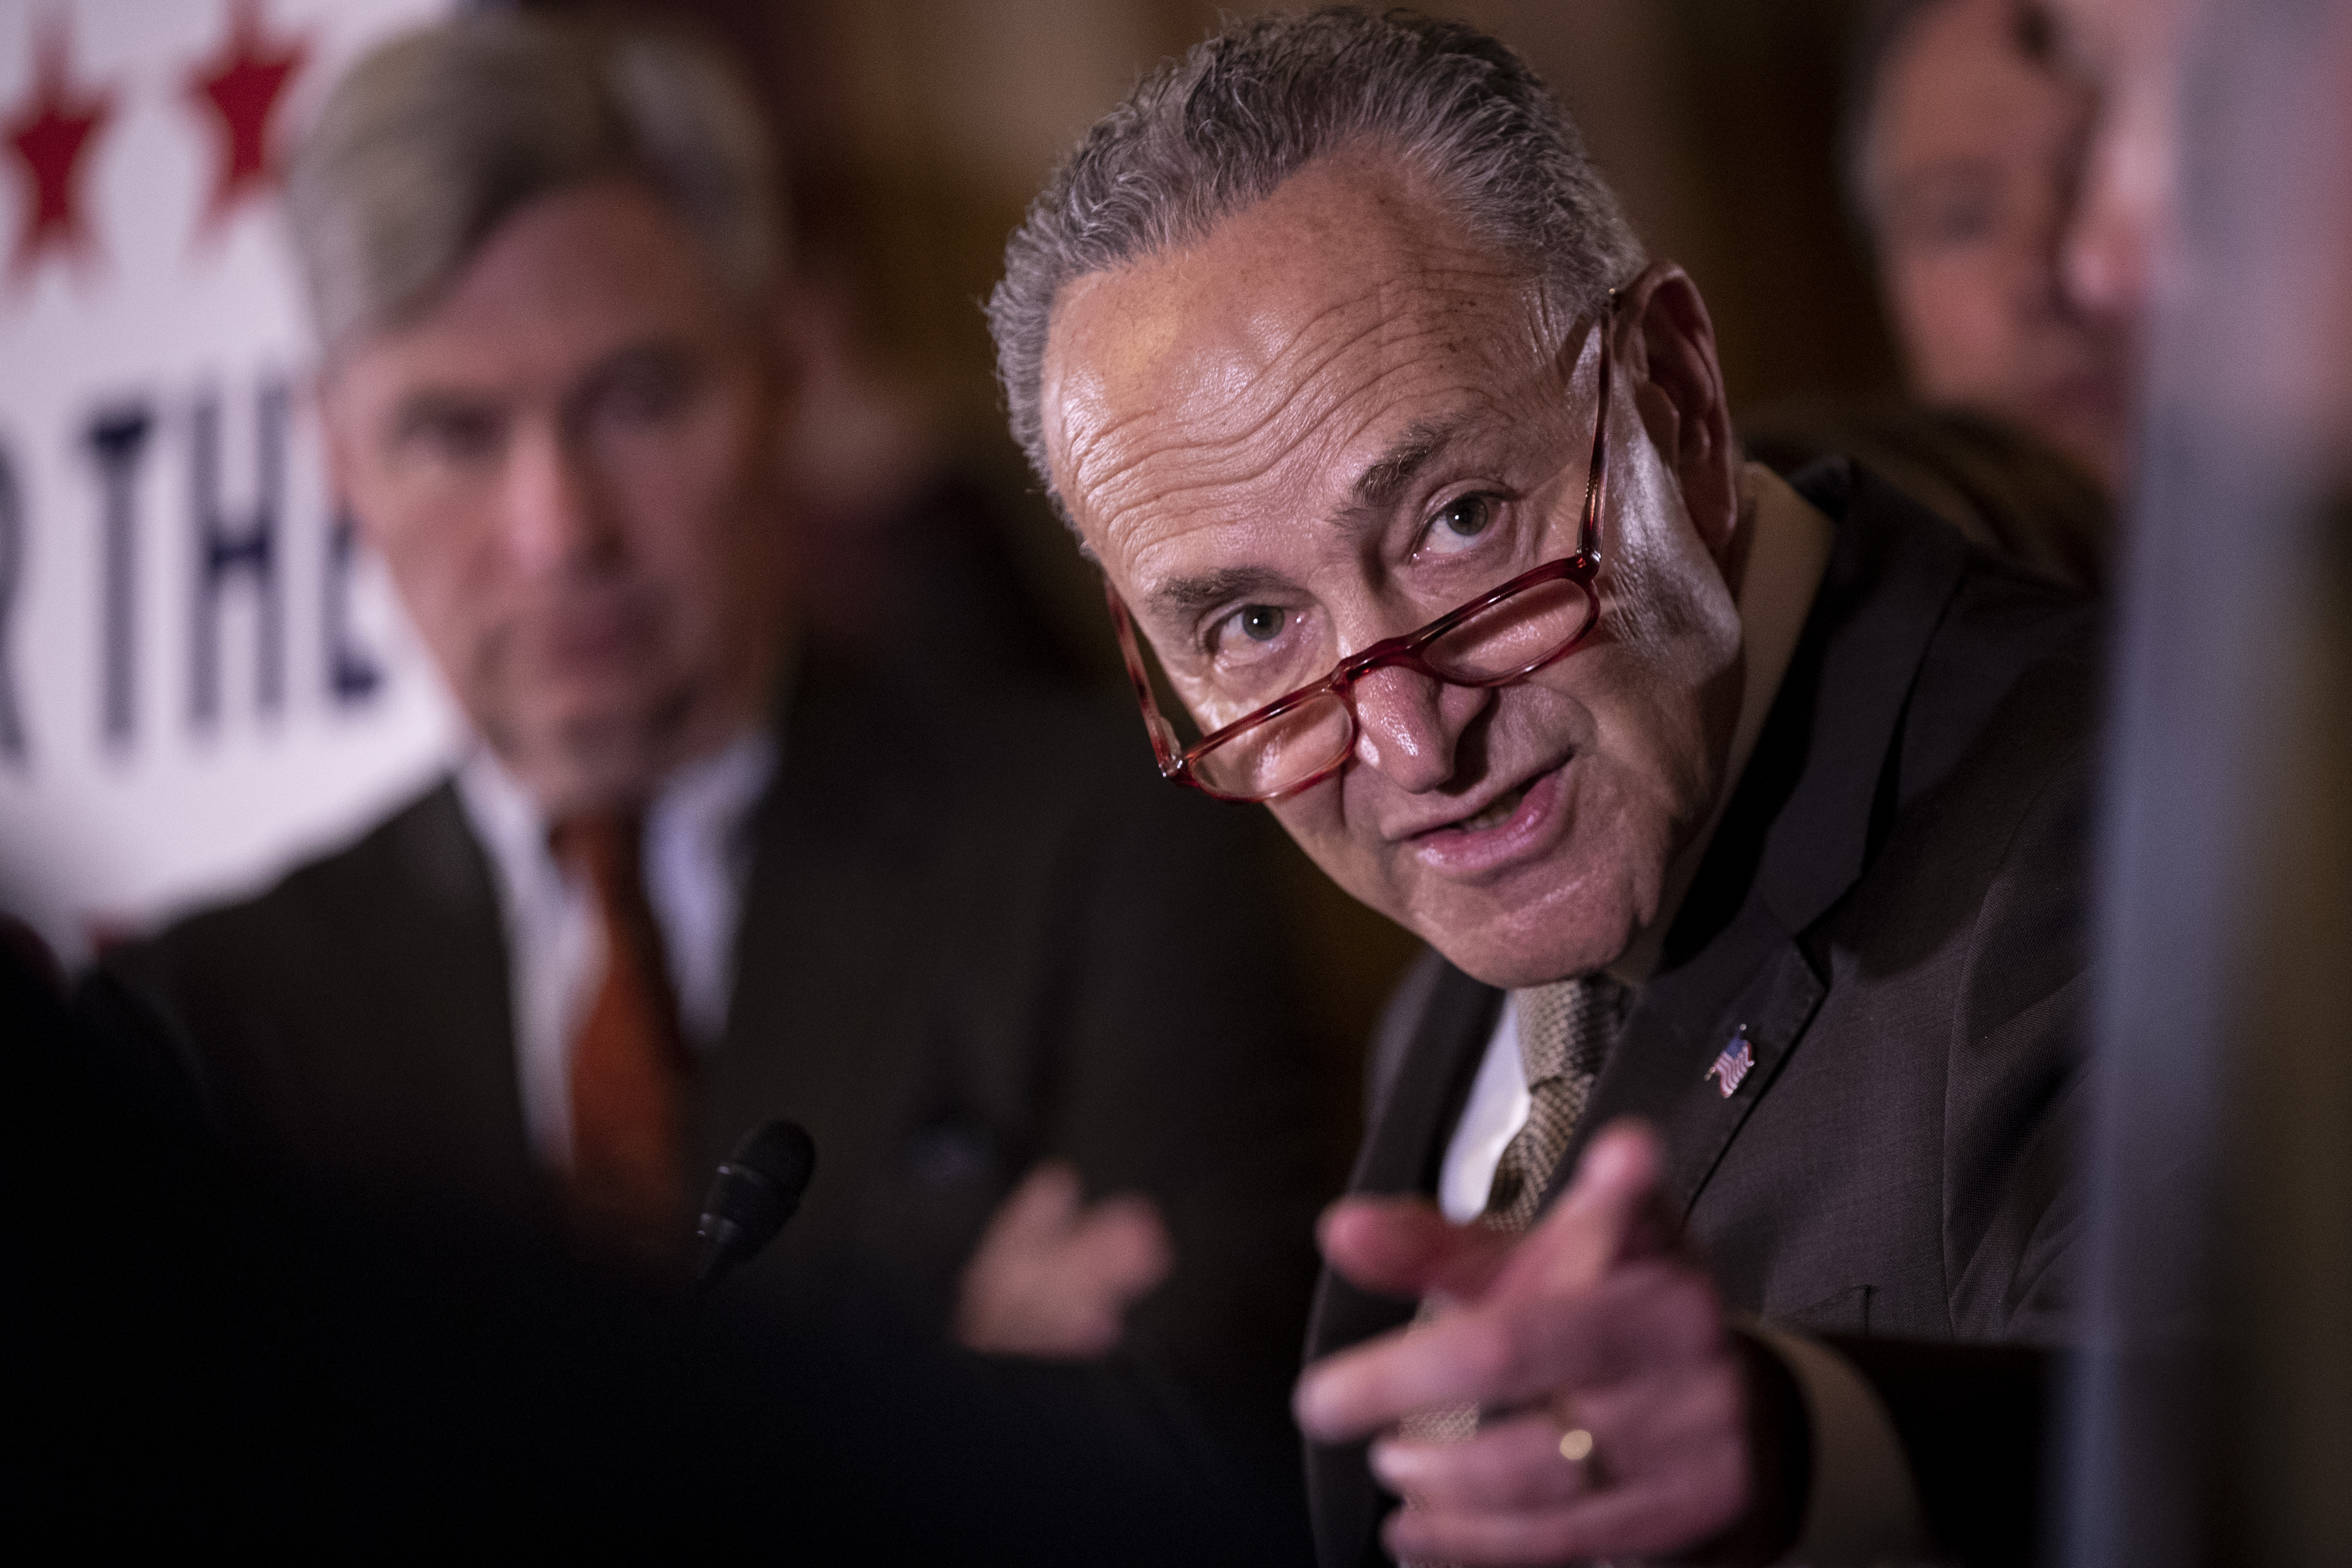 Sen. Chuck Schumer speaks at a press conference on Capitol Hill in March 2019.